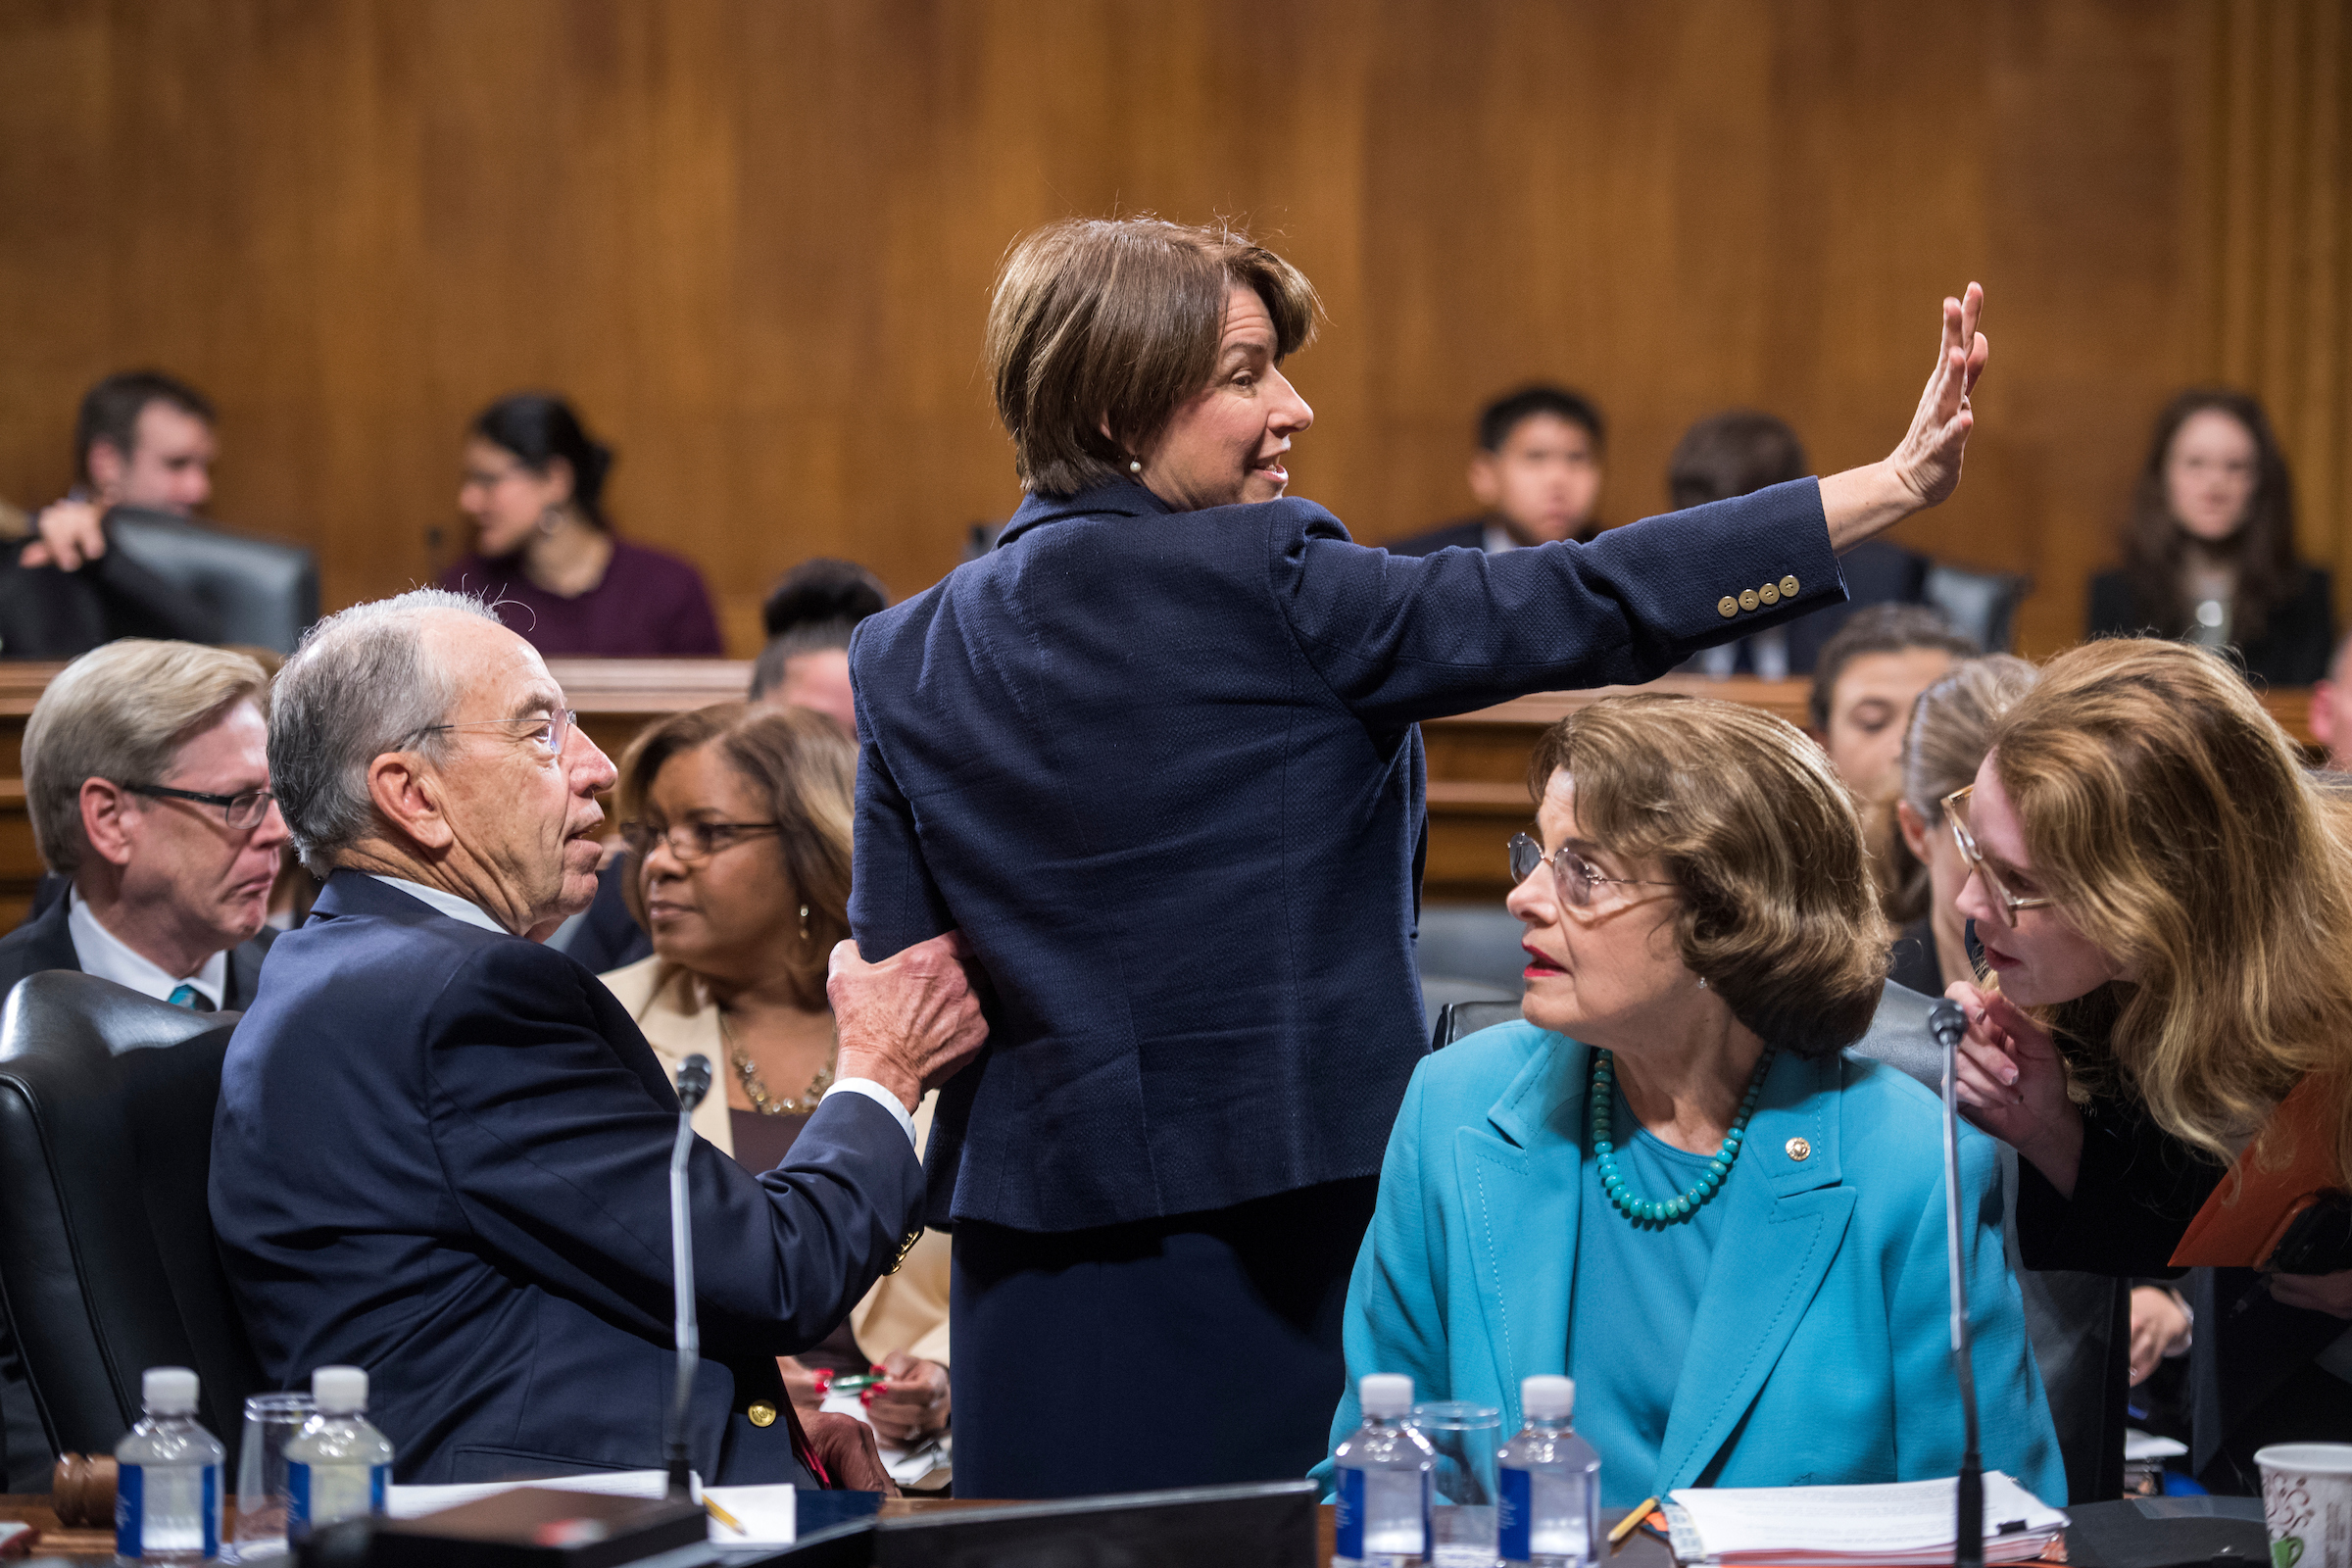 UNITED STATES - OCTOBER 26: From left, Chairman Charles Grassley, R-Iowa, Amy Klobuchar, D-Minn., and Dianne Feinstein, D-Calif., ranking member, are seen during a Senate Judiciary Committee markup on judicial nominations in Dirksen Building on October 26, 2017. (Photo By Tom Williams/CQ Roll Call)